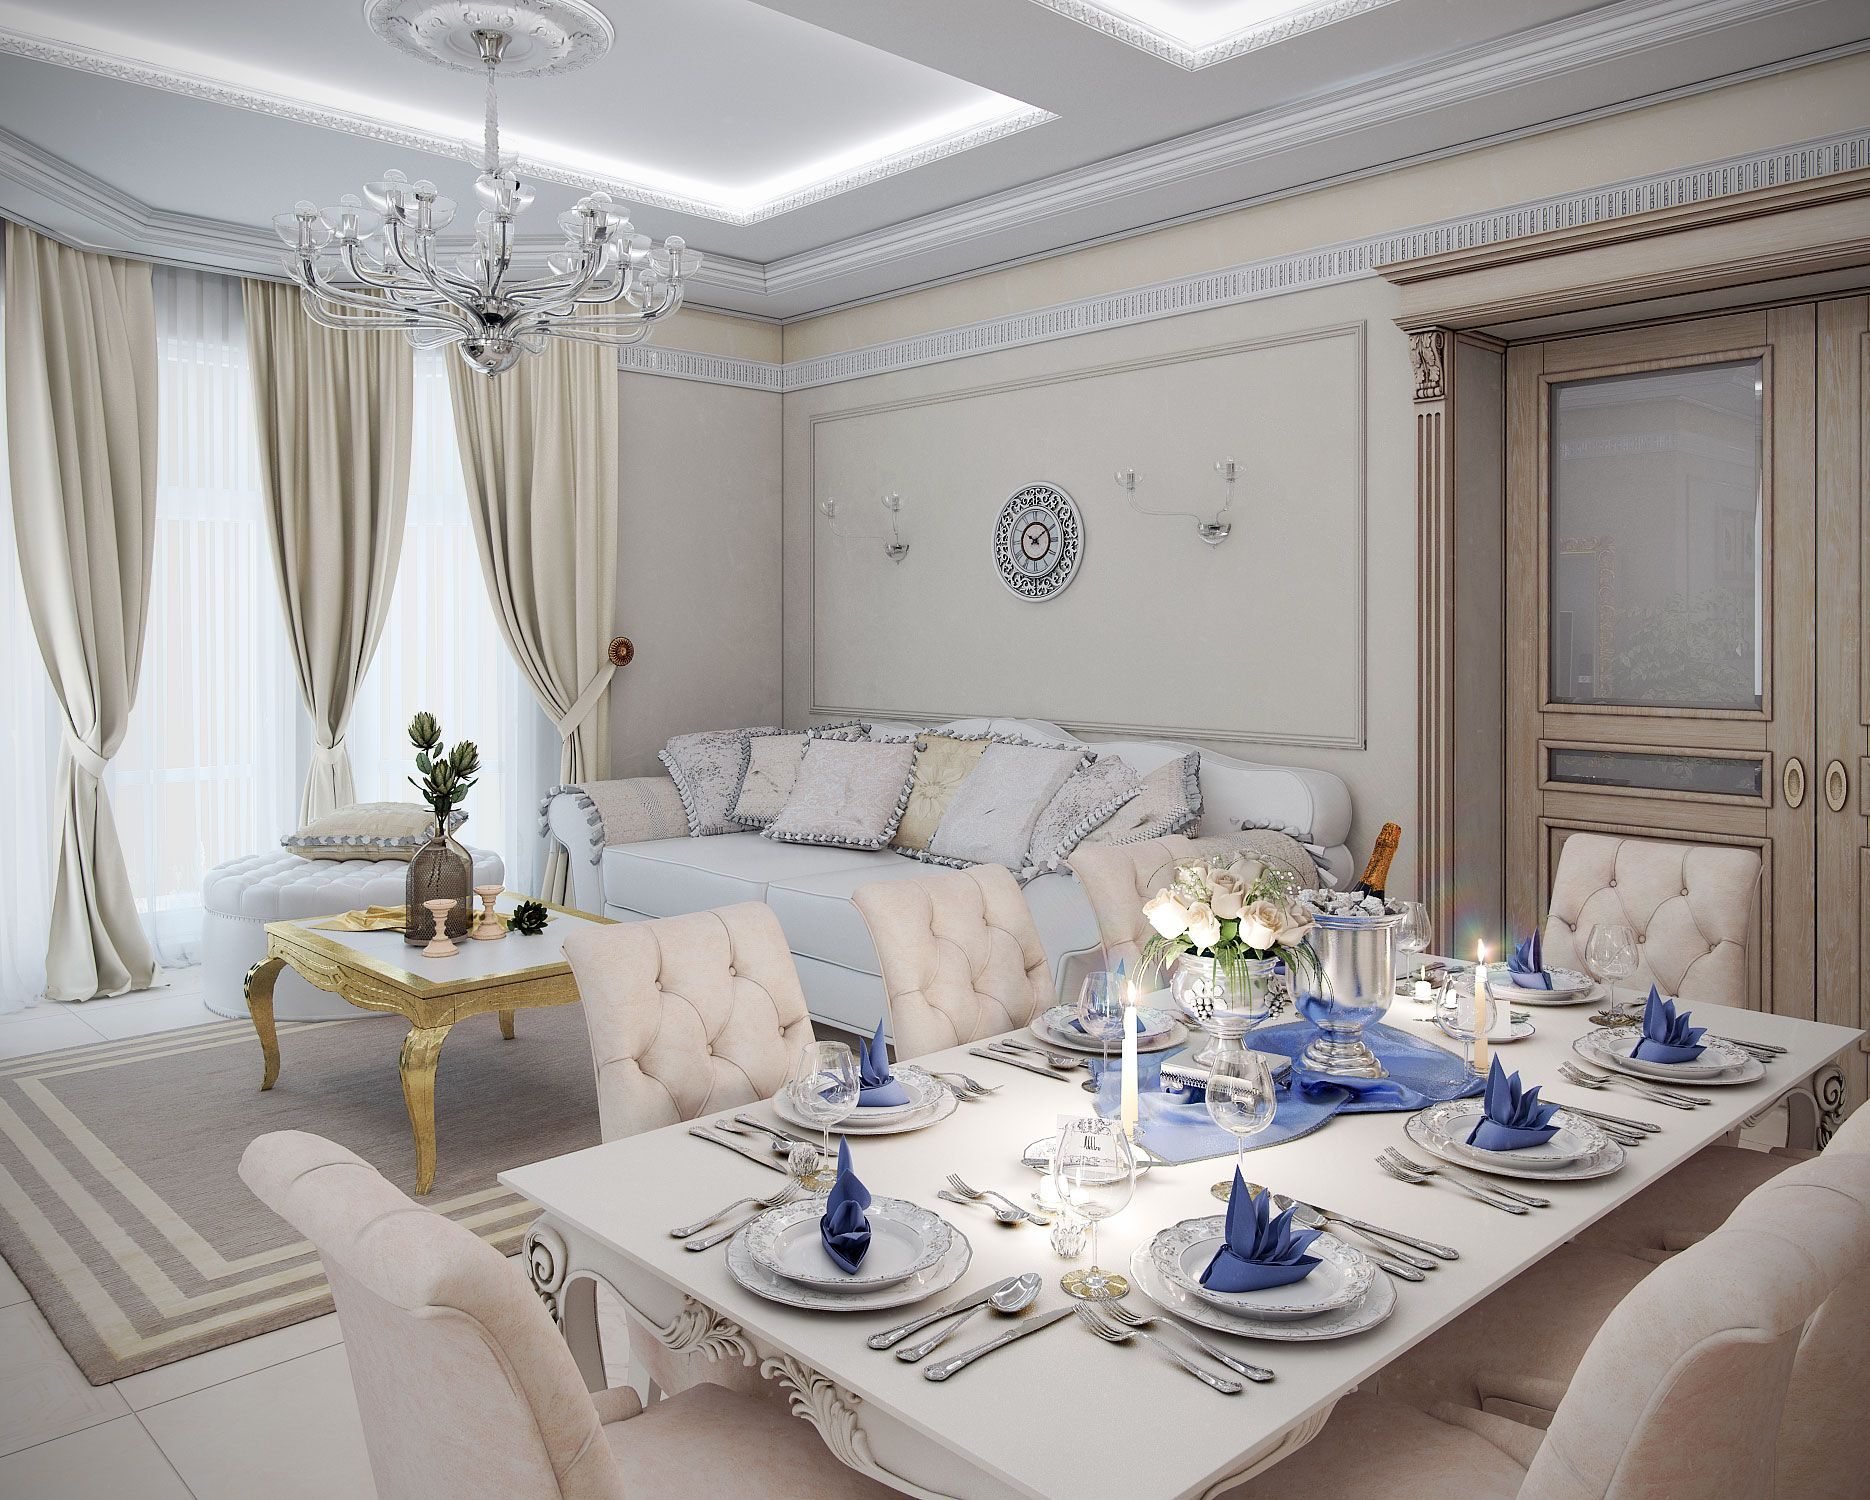 White living room decoration - White Living Room Decoration Classical Living Room White Living Room Dining Room Decor Family Room